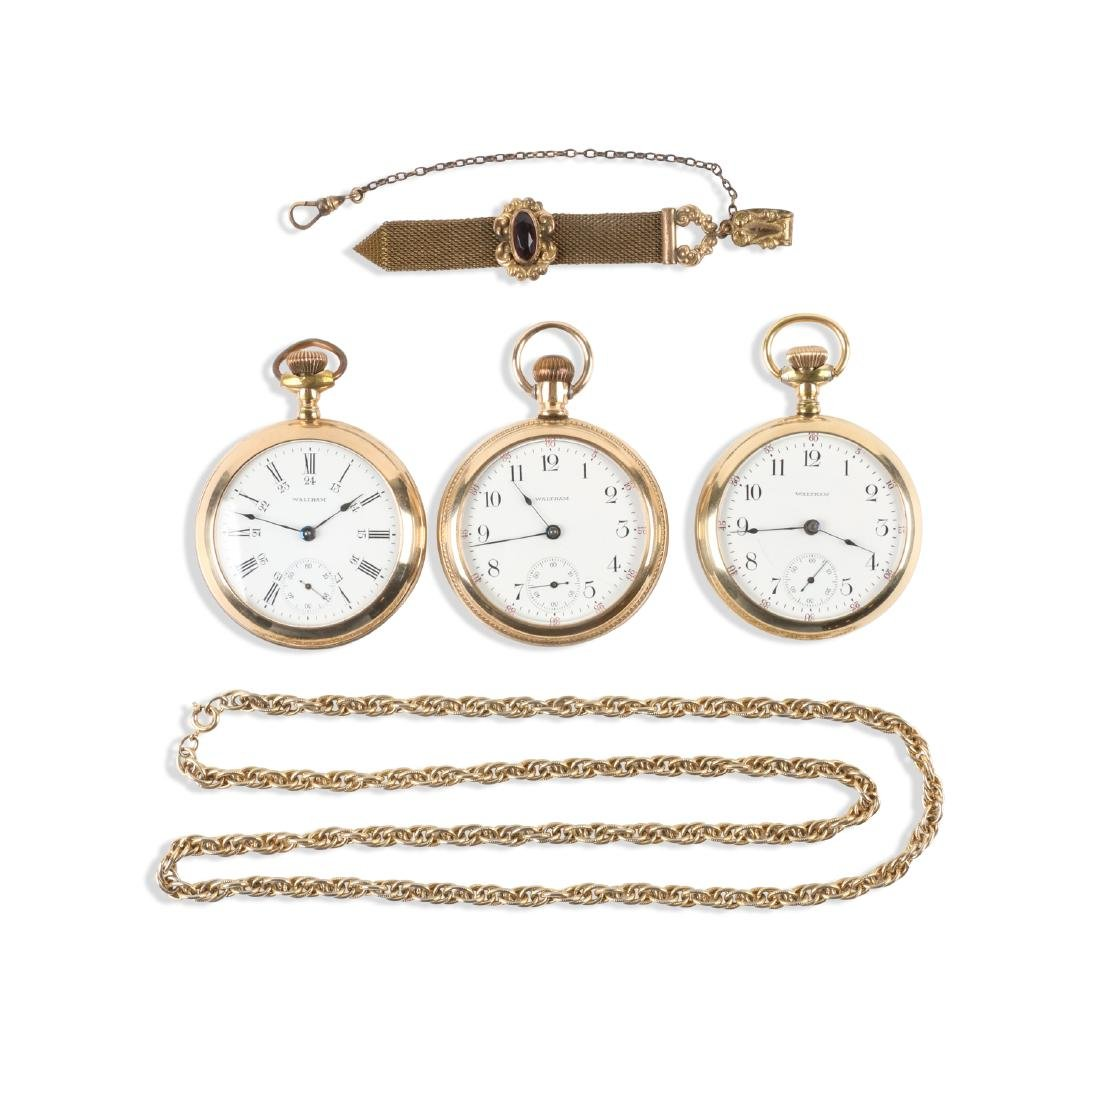 Waltham, 1883 Model Pocket Watches